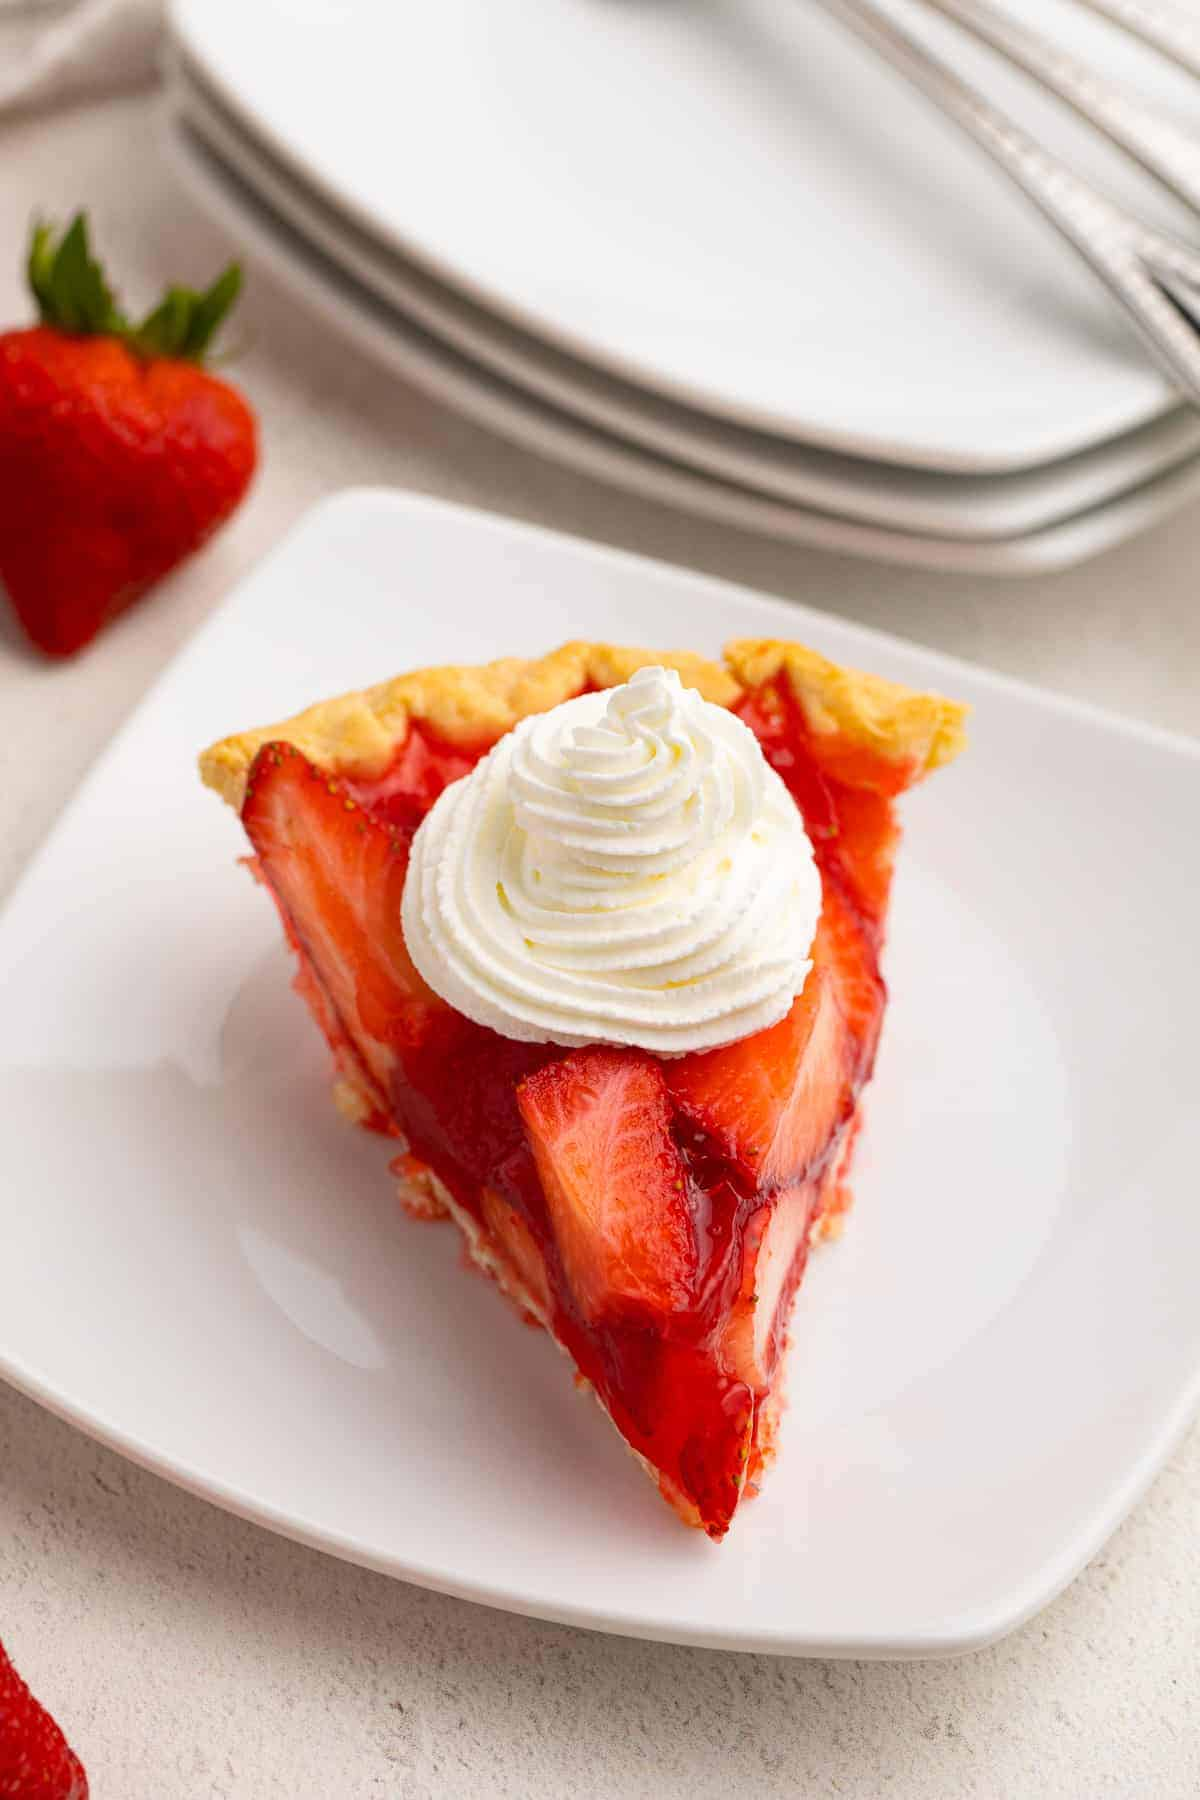 slice of strawberry jello pie with whipped cream on white plate